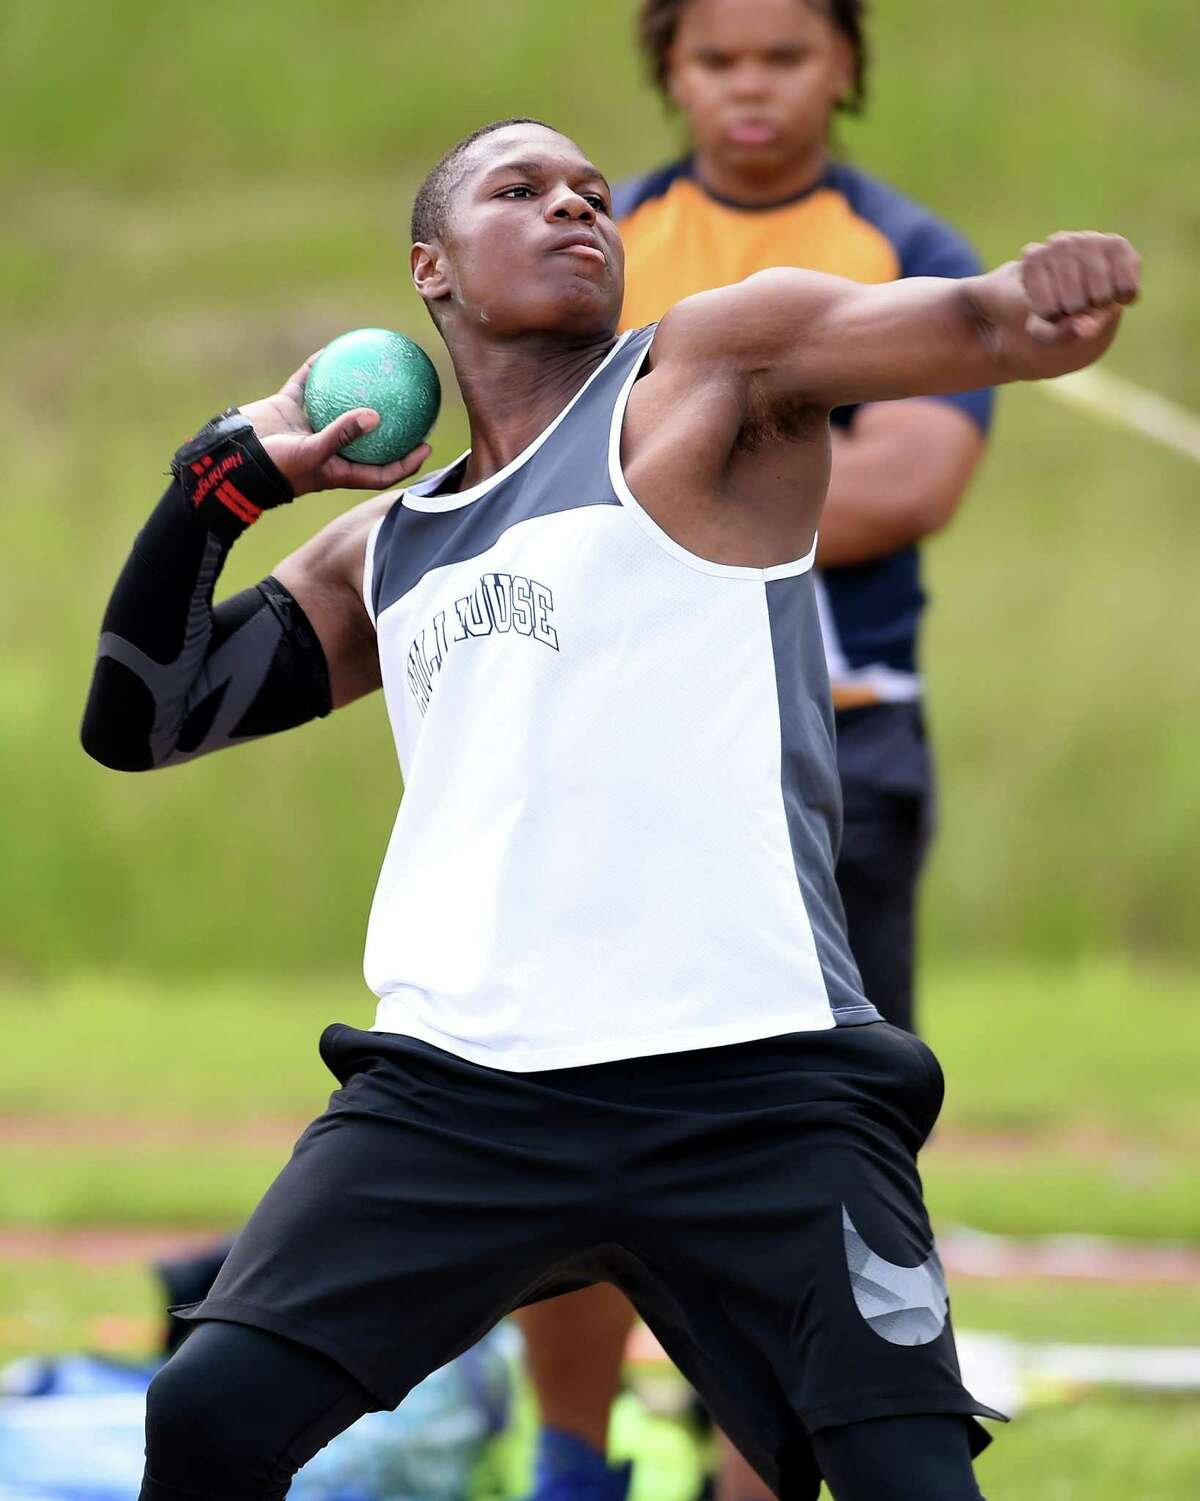 Gary Moore, Jr., of Hillhouse throws the shot put in the CIAC Class MM Outdoor Track & Field Championship at Middletown High School on May 29, 2019.